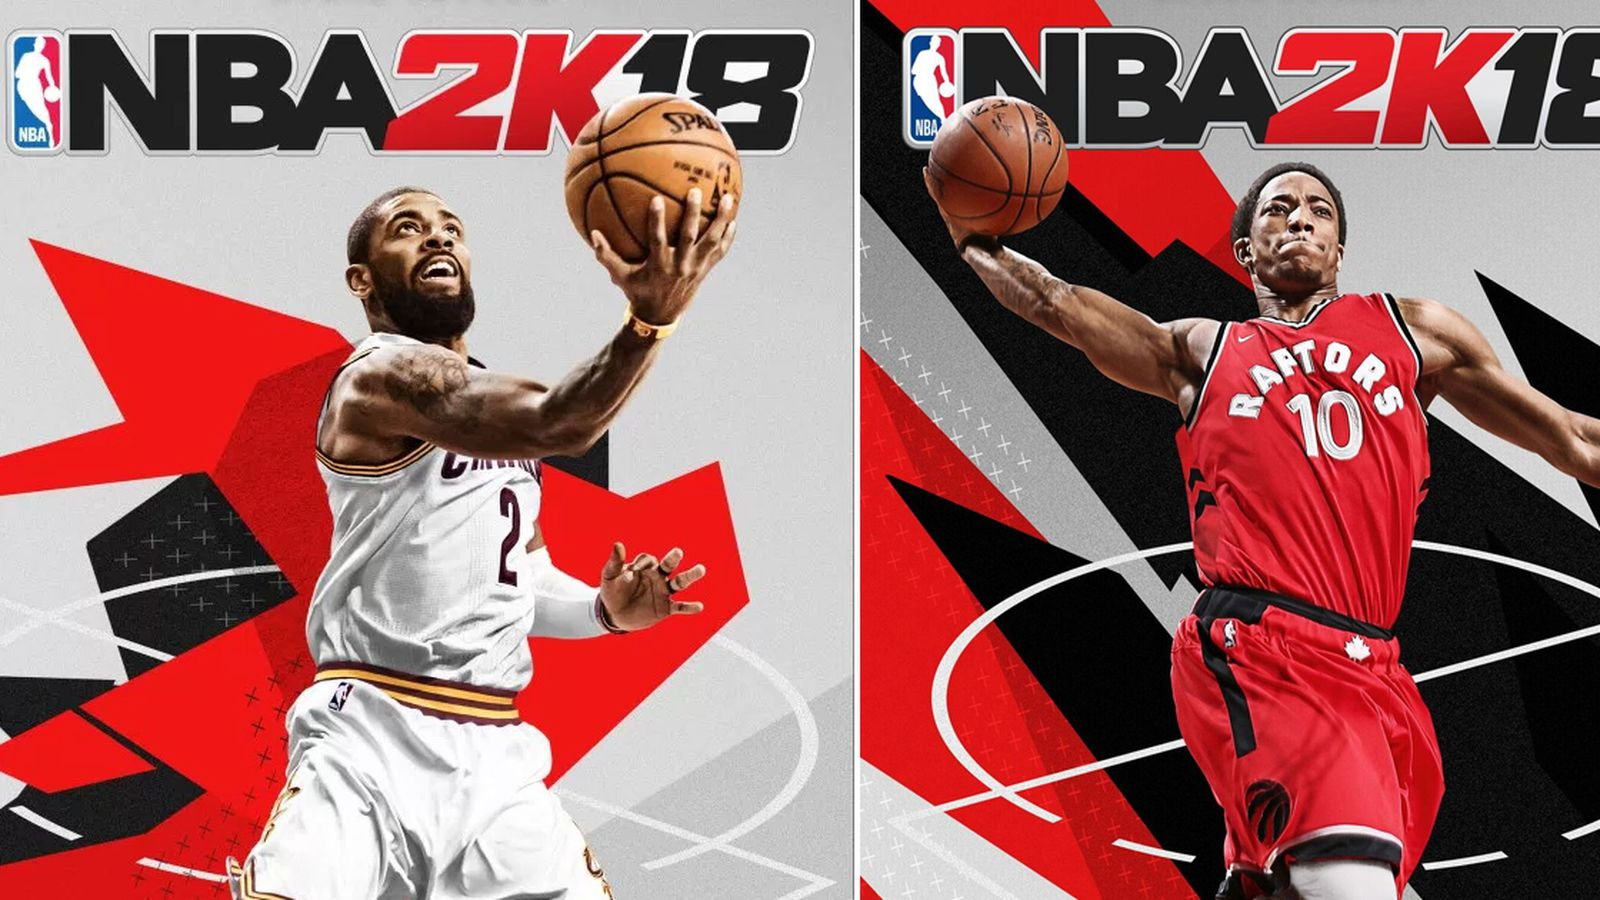 Here's everything you need to know about 'NBA 2K18